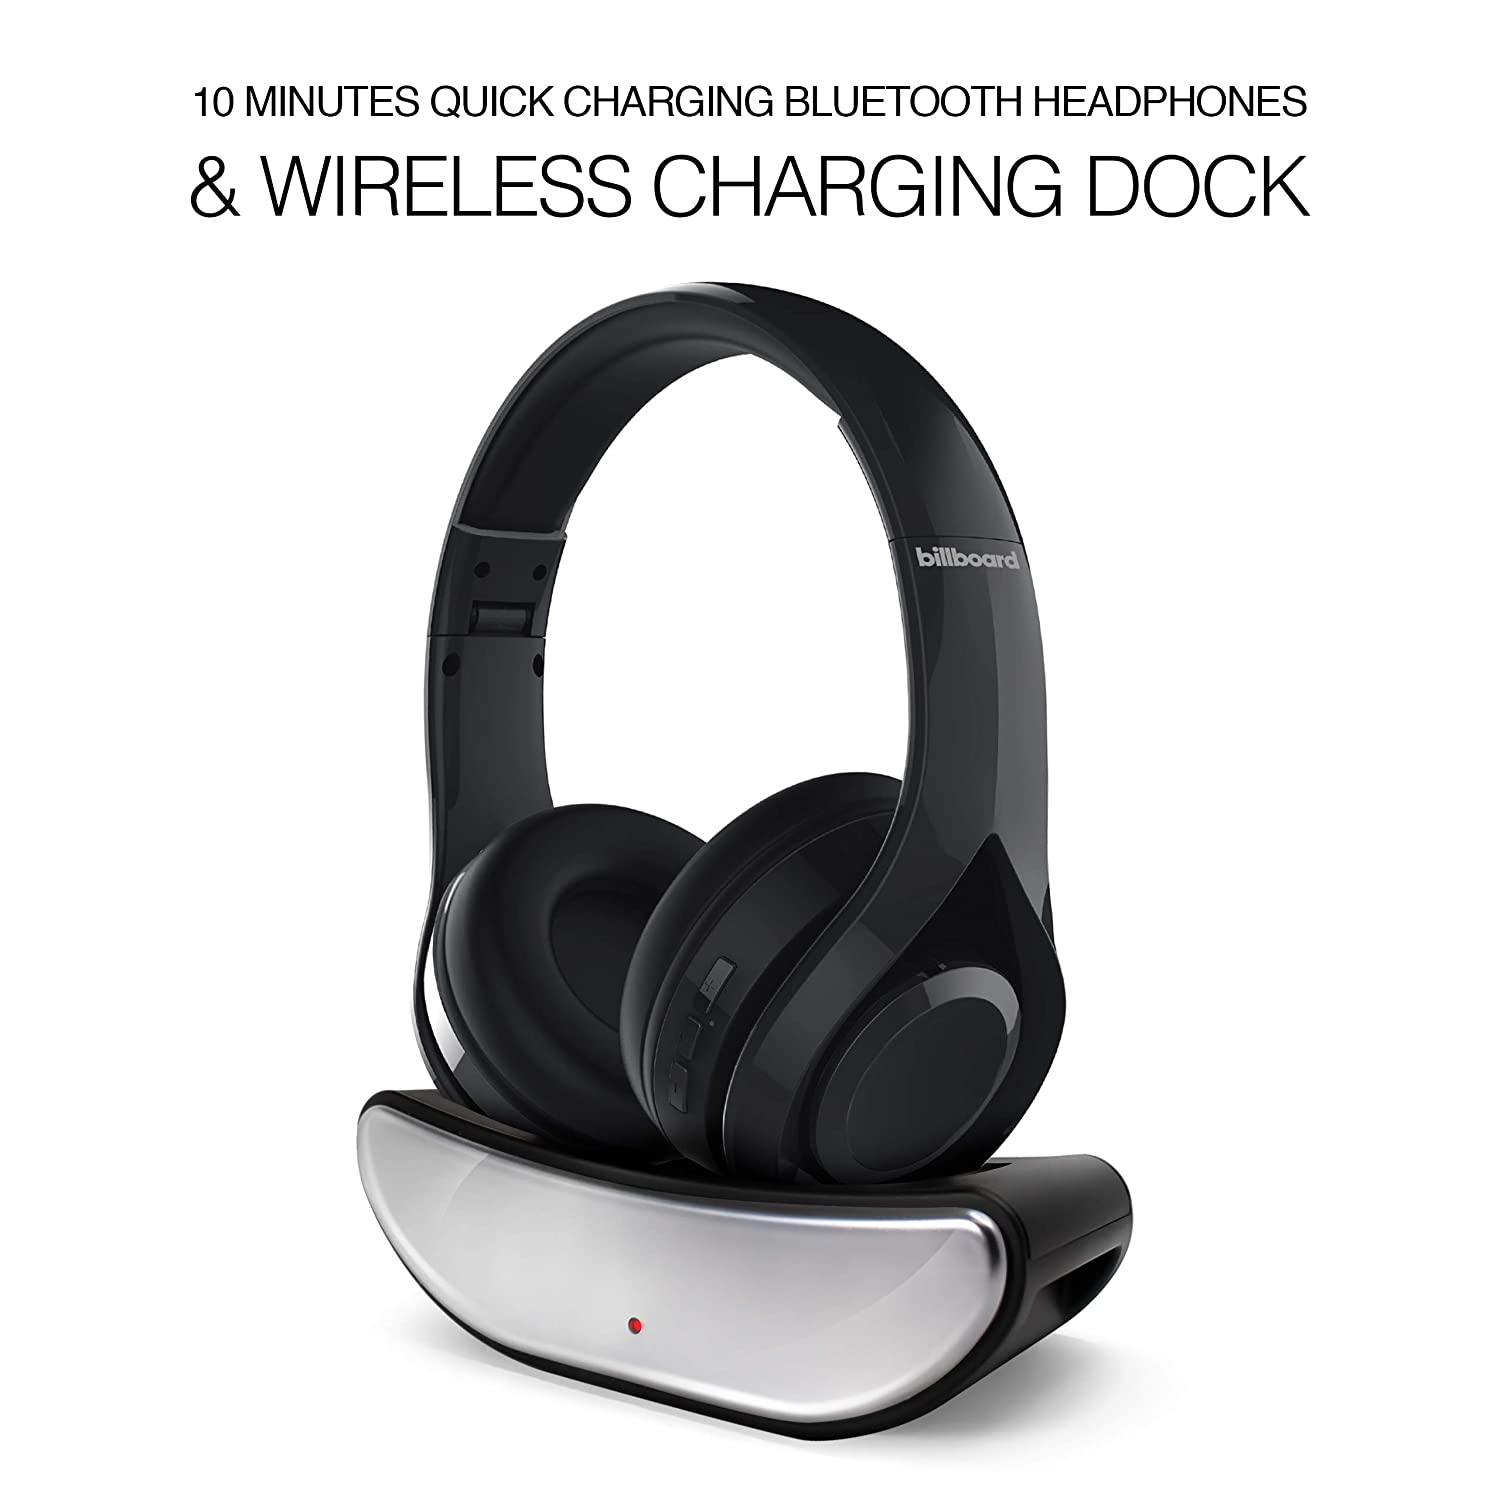 10 Minutes Quick Charging Headphones & Charging Dock. Extra Bass. Over Ear Headphones, Long Talk and Play time, Soft Protein earcups for Travel/Work/PC/iPhones/Samsung Phones-Black